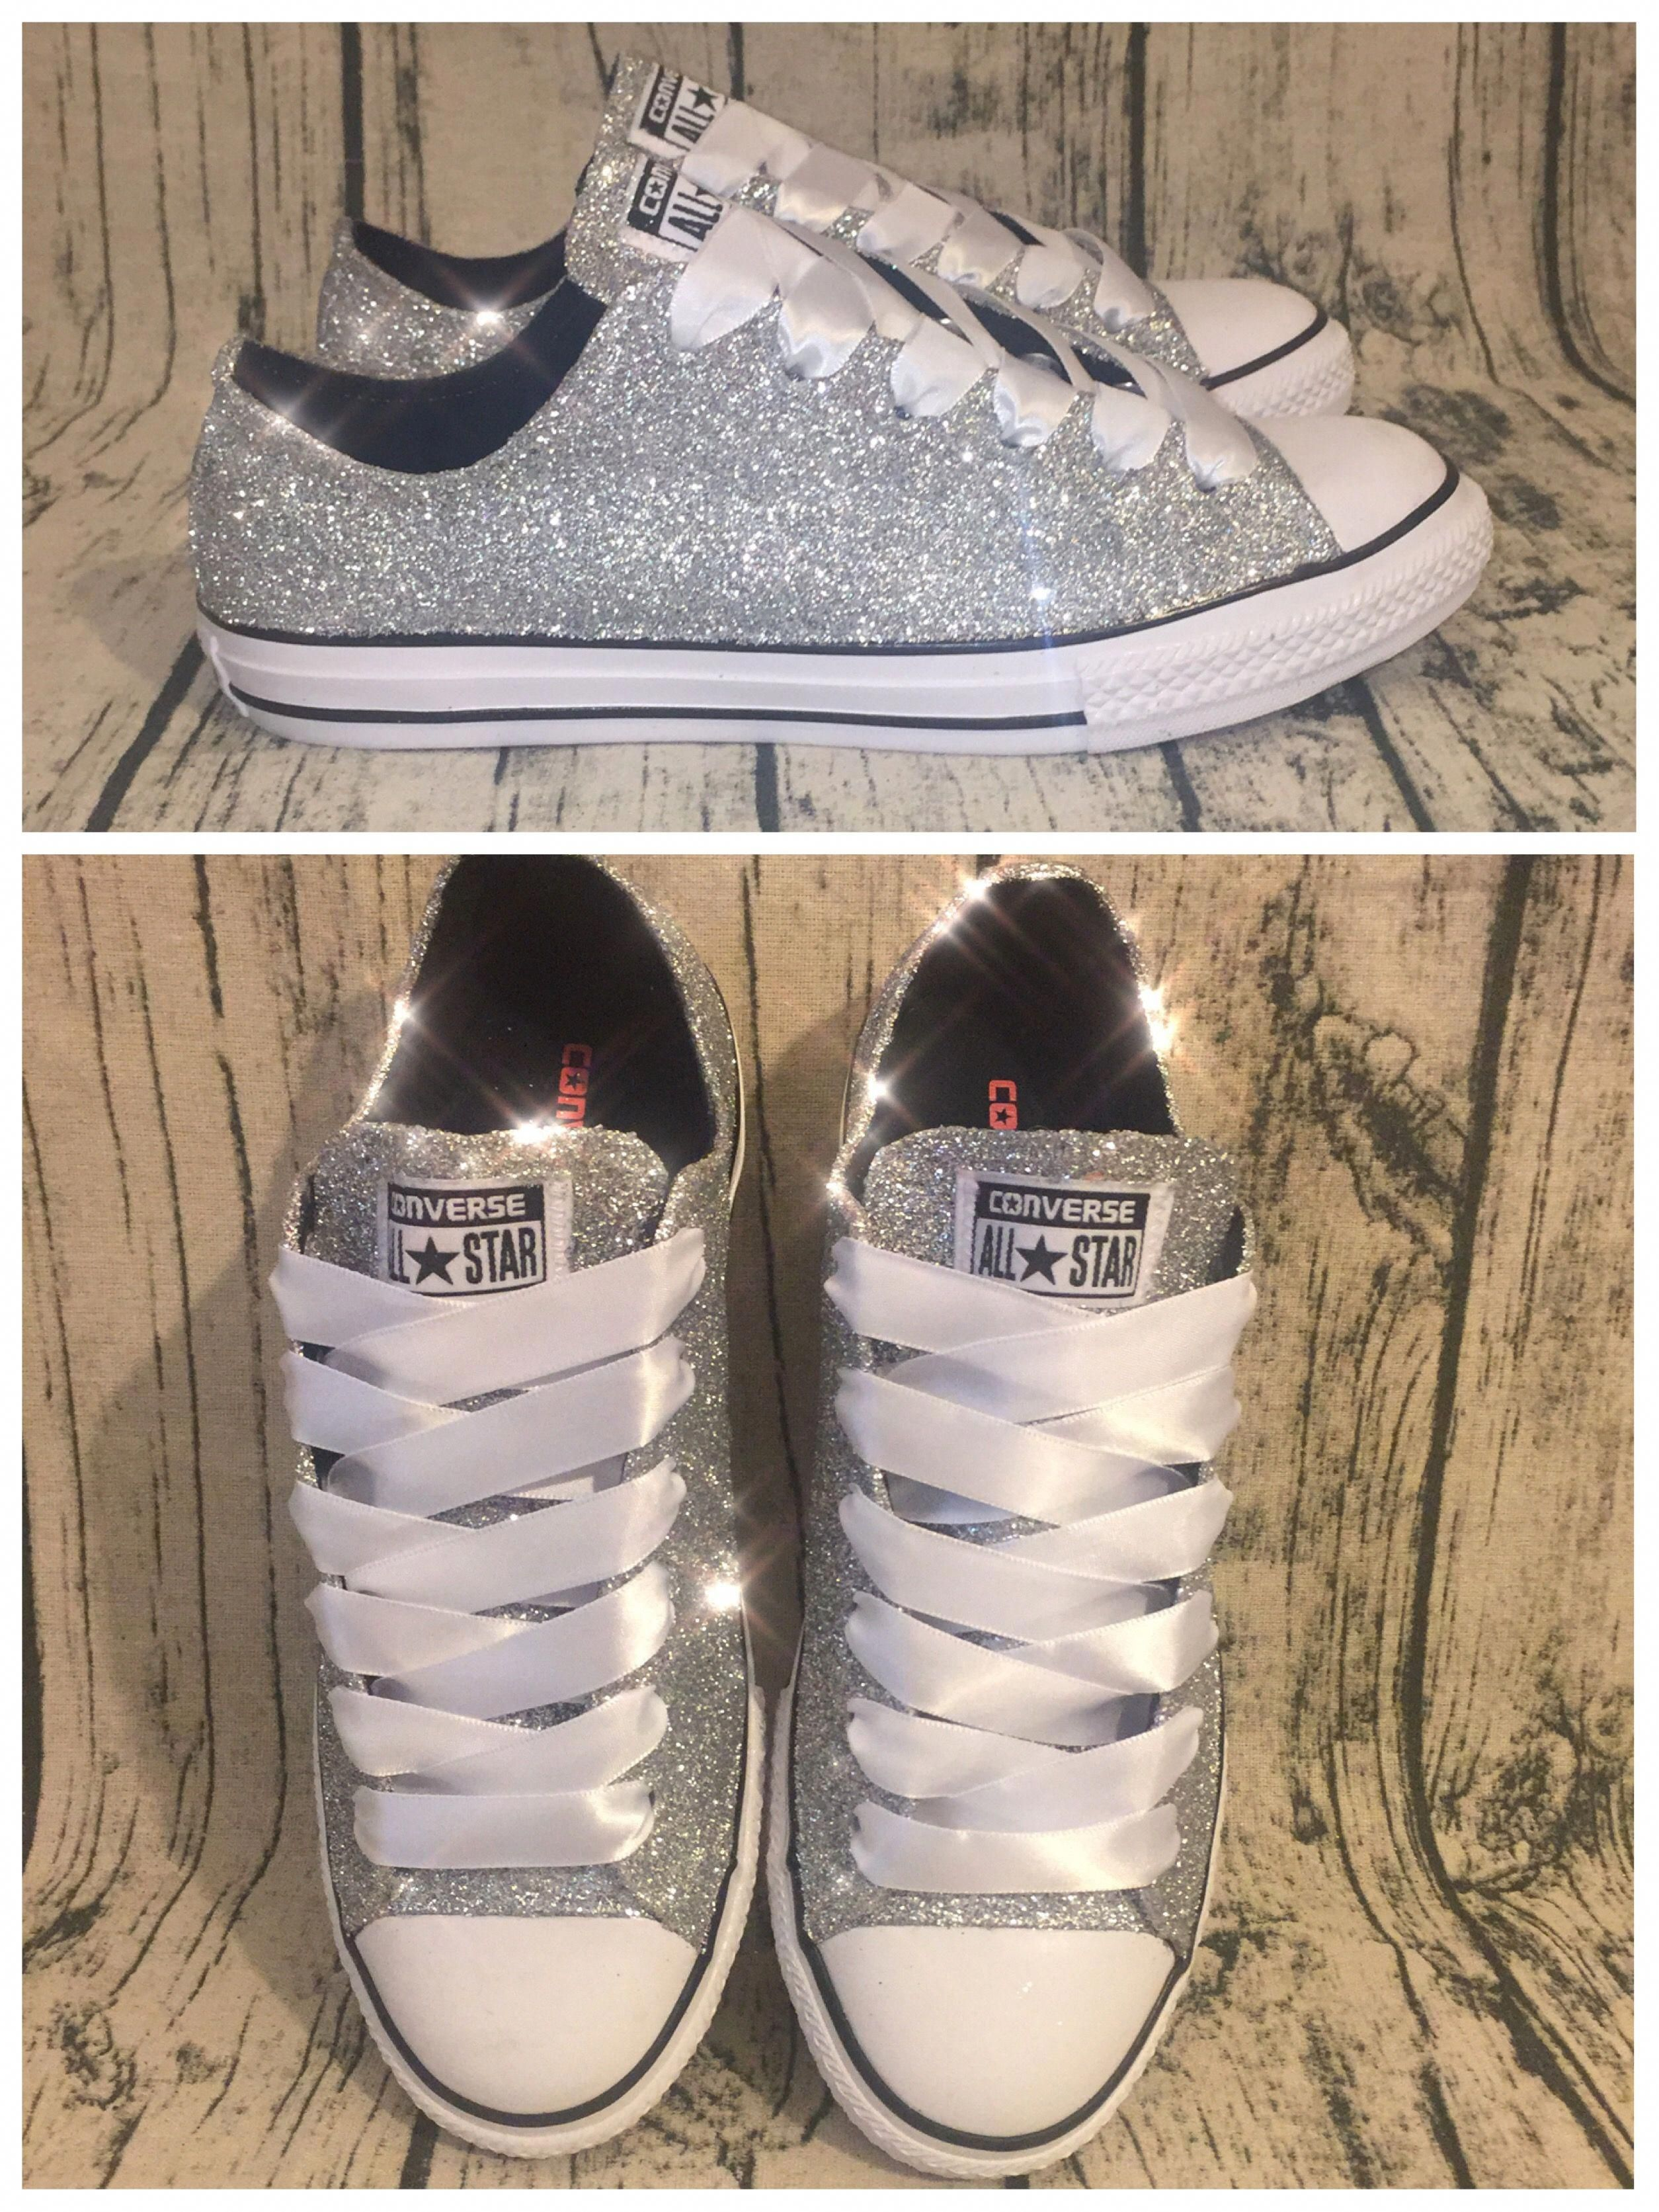 60021a3ab226 www.glittershoeco.com Women s Sparkly Silver Glitter Converse. Custom Made.  High Top Low Top and Wedge Heels are available.  Promheels